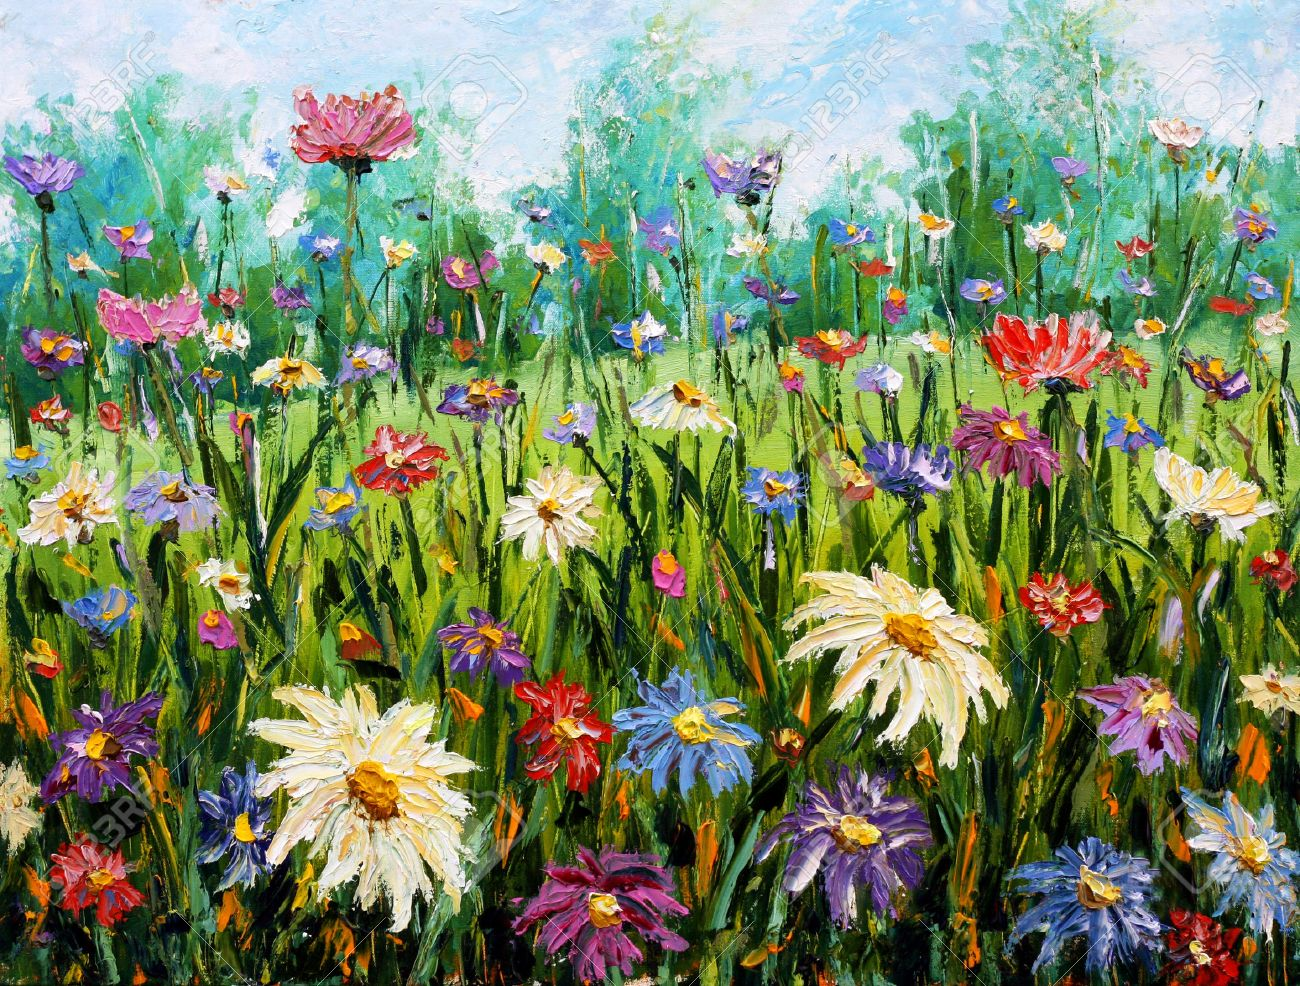 Original oil painting of flowersbeautiful field flowers on canvas original oil painting of flowersbeautiful field flowers on canvas wildflowers modern impressionism izmirmasajfo Image collections